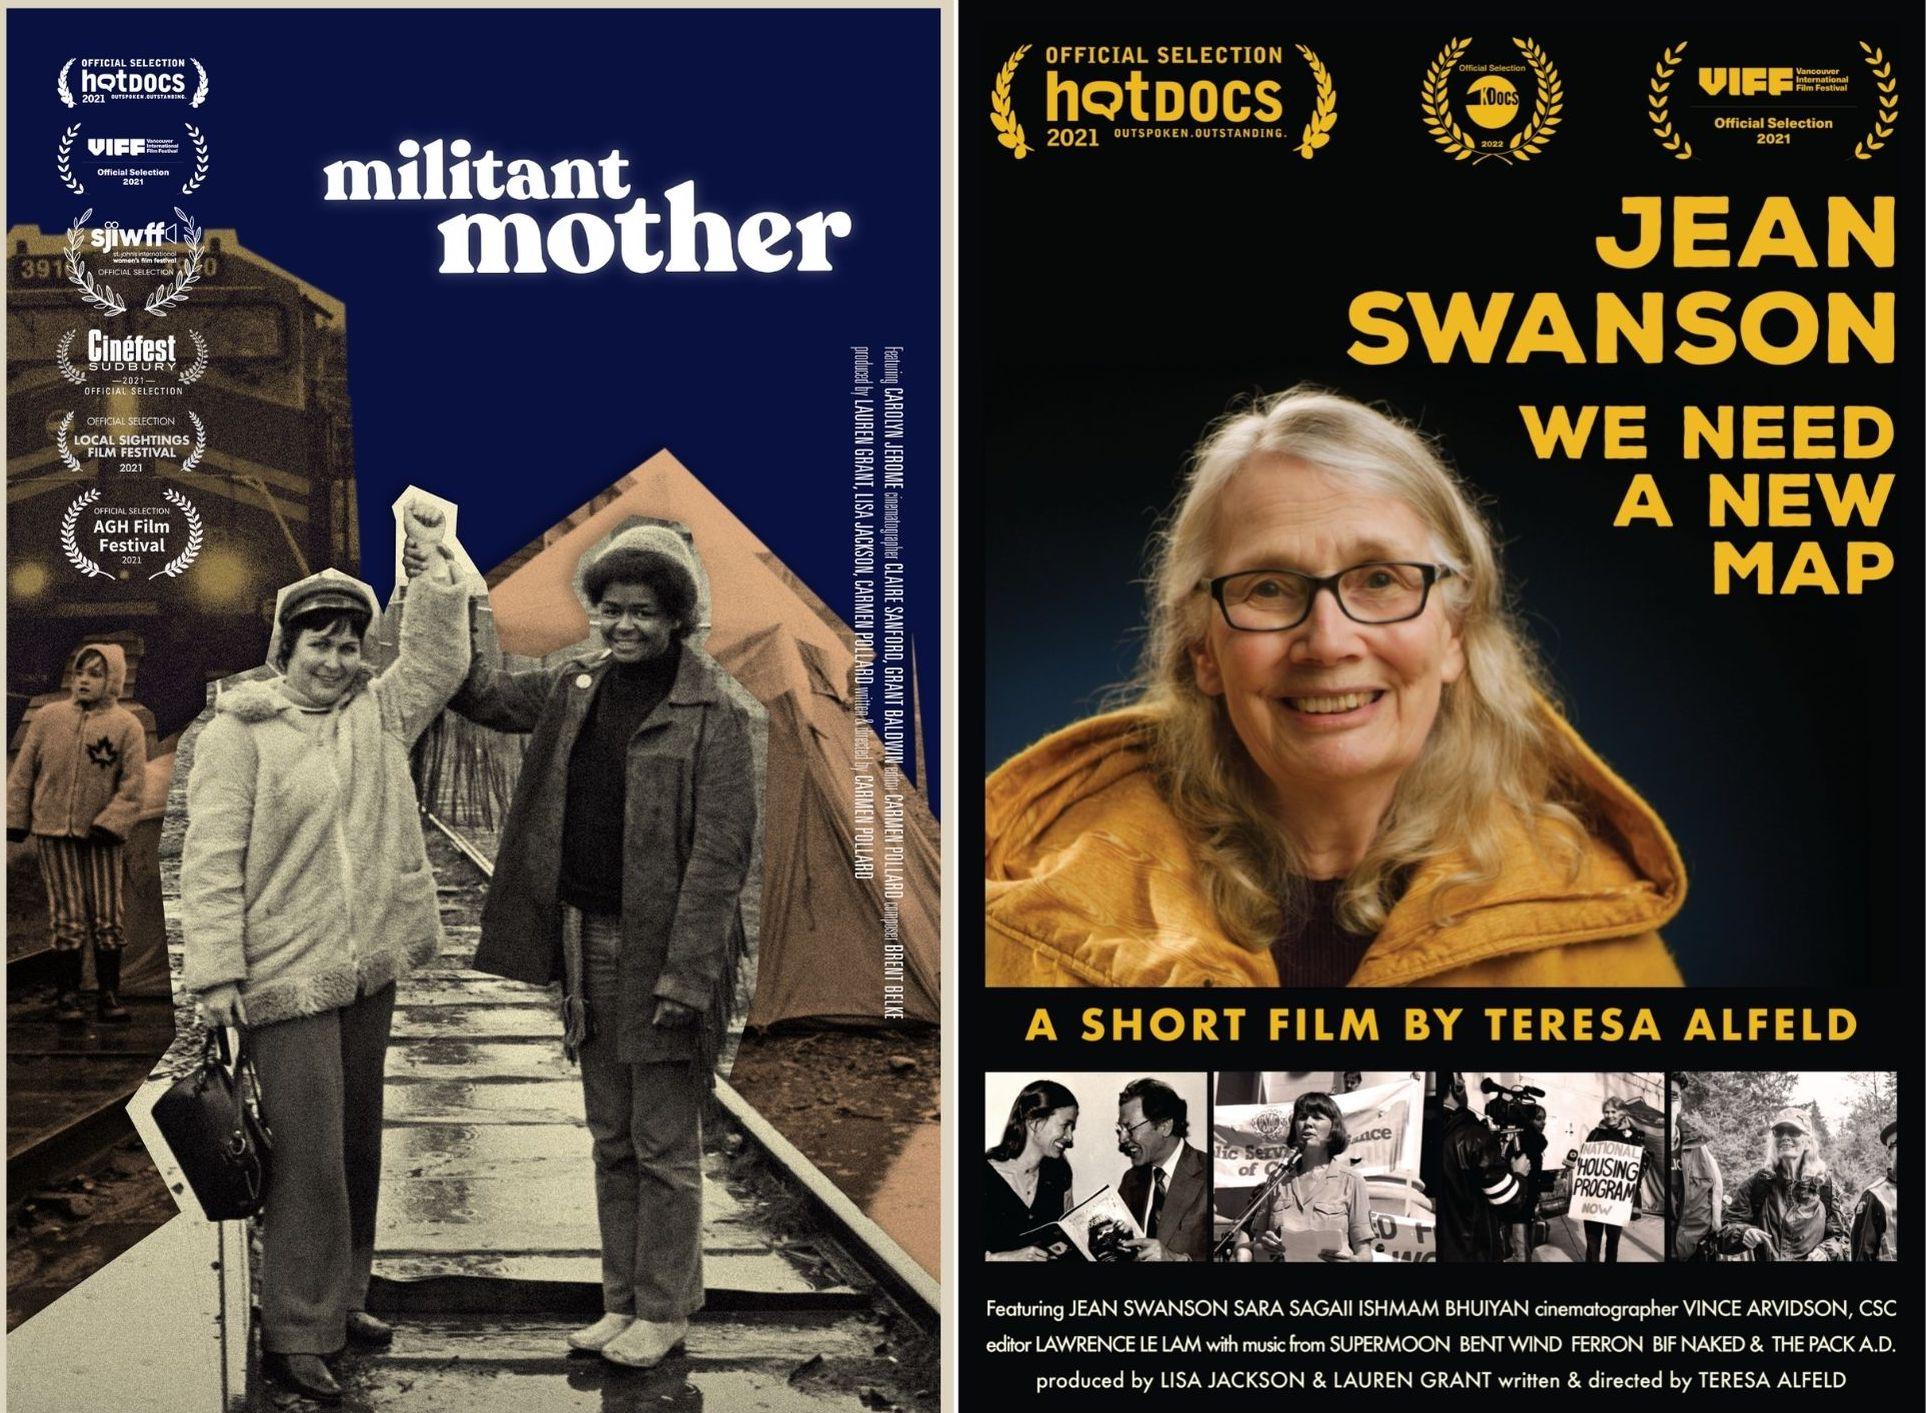 Hot Docs + Women Transforming Cities present Militant Mothers + Jean Swanson: We Need a New Road Map   Roundtable Discussion +  Q&A